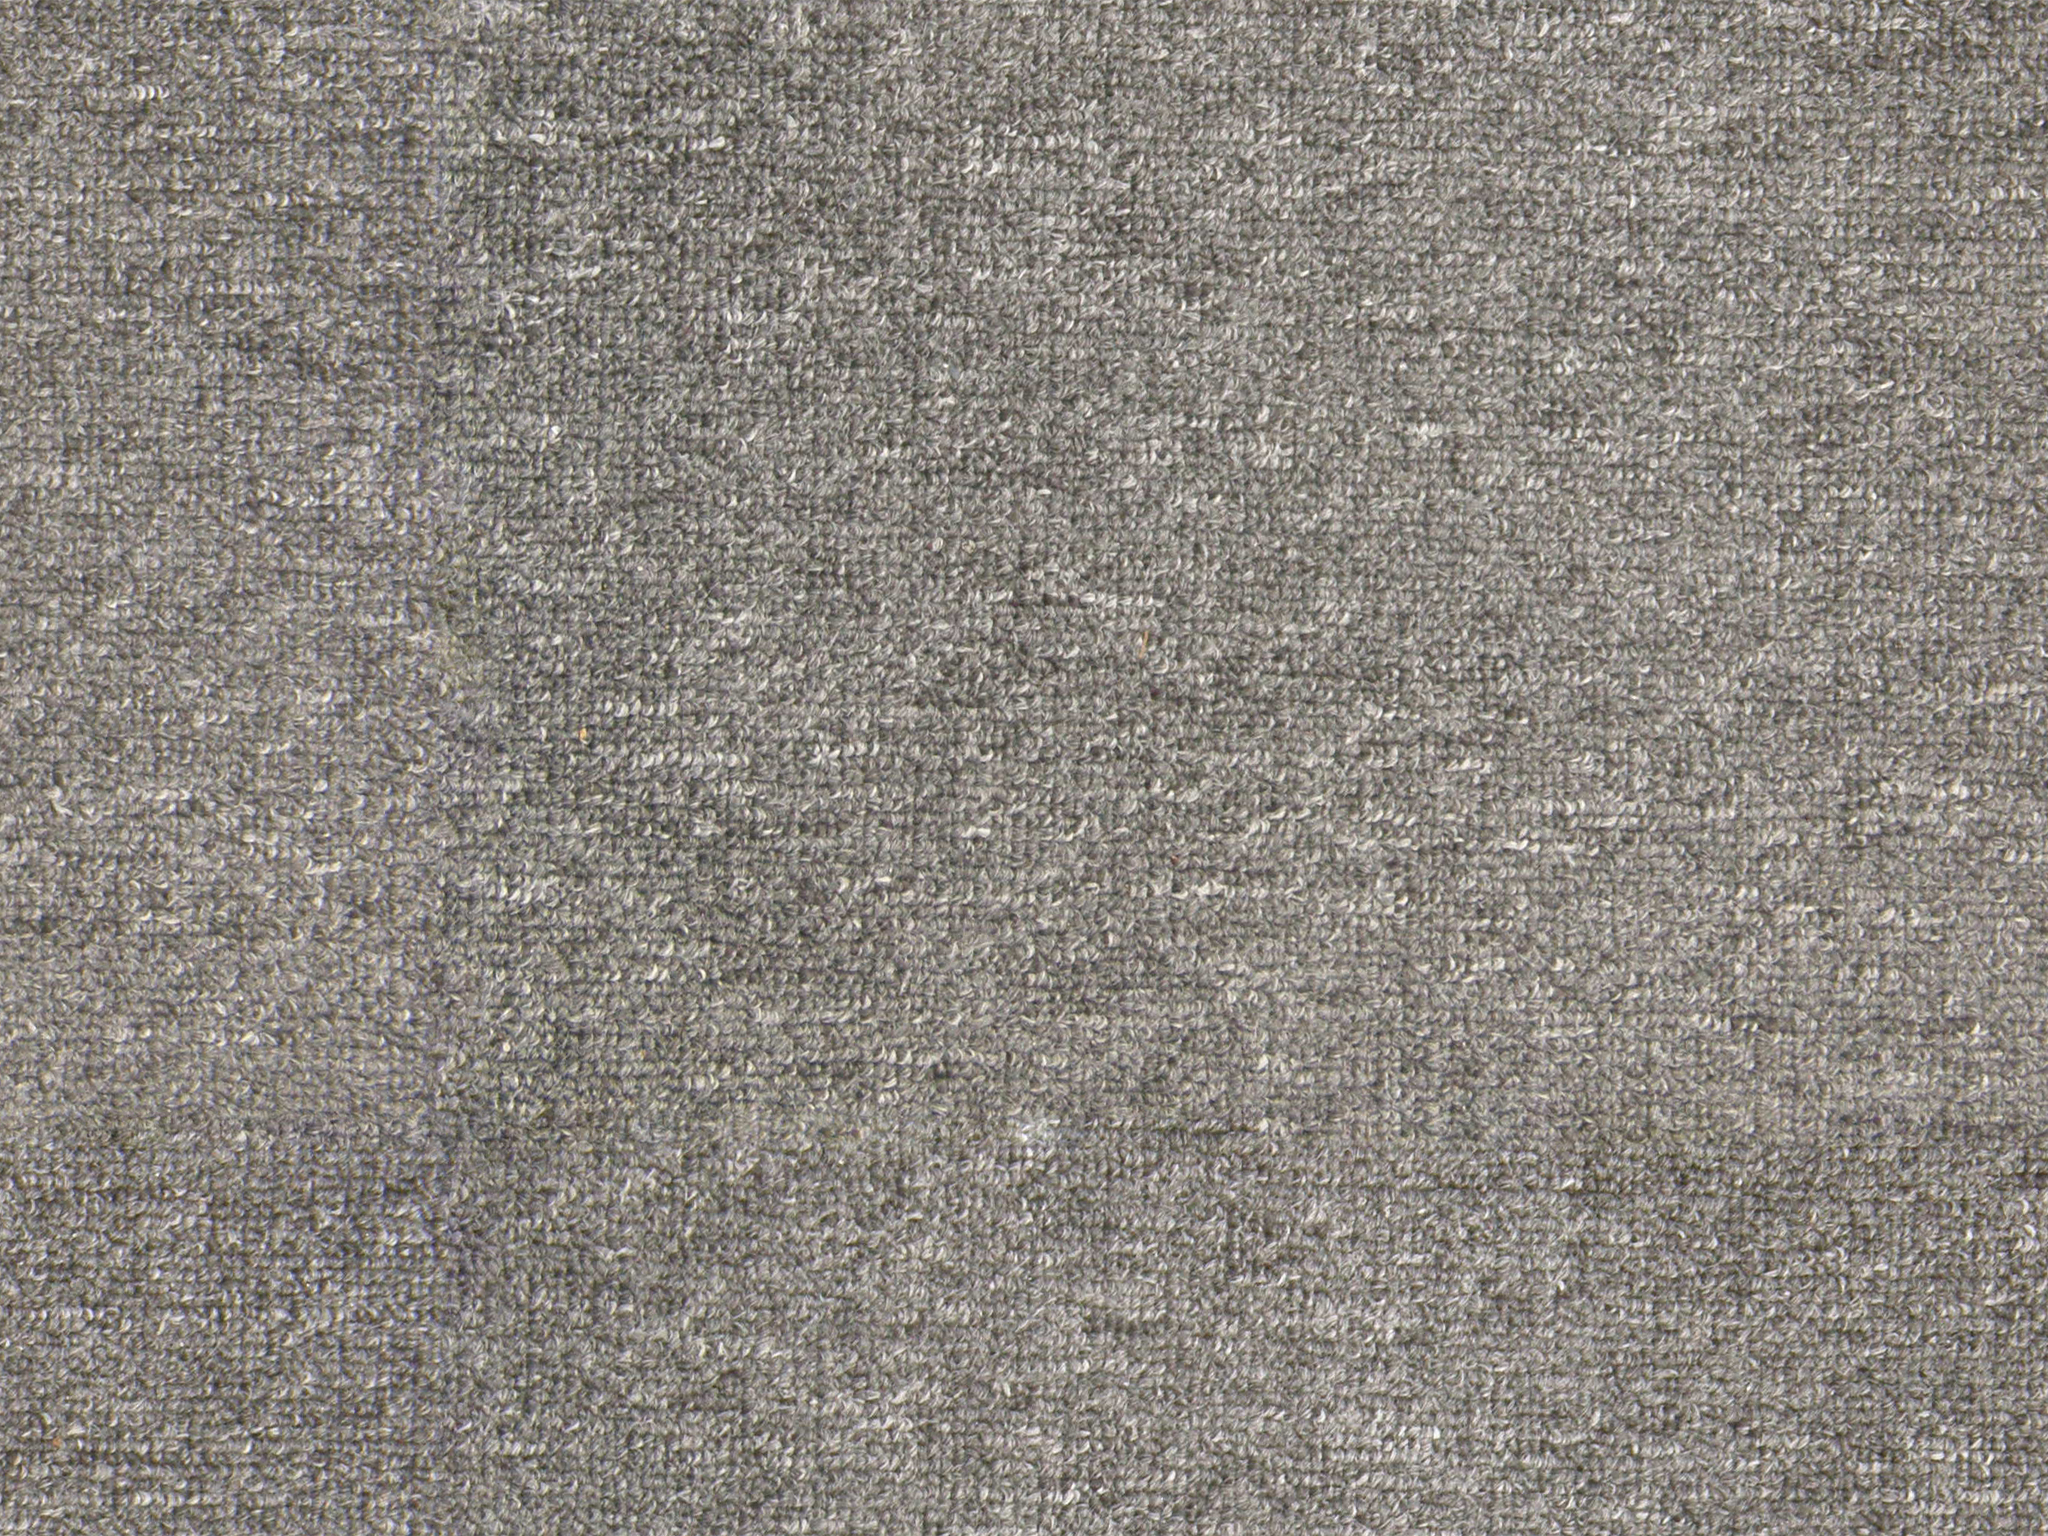 tileable carpet texture GPFODBJ